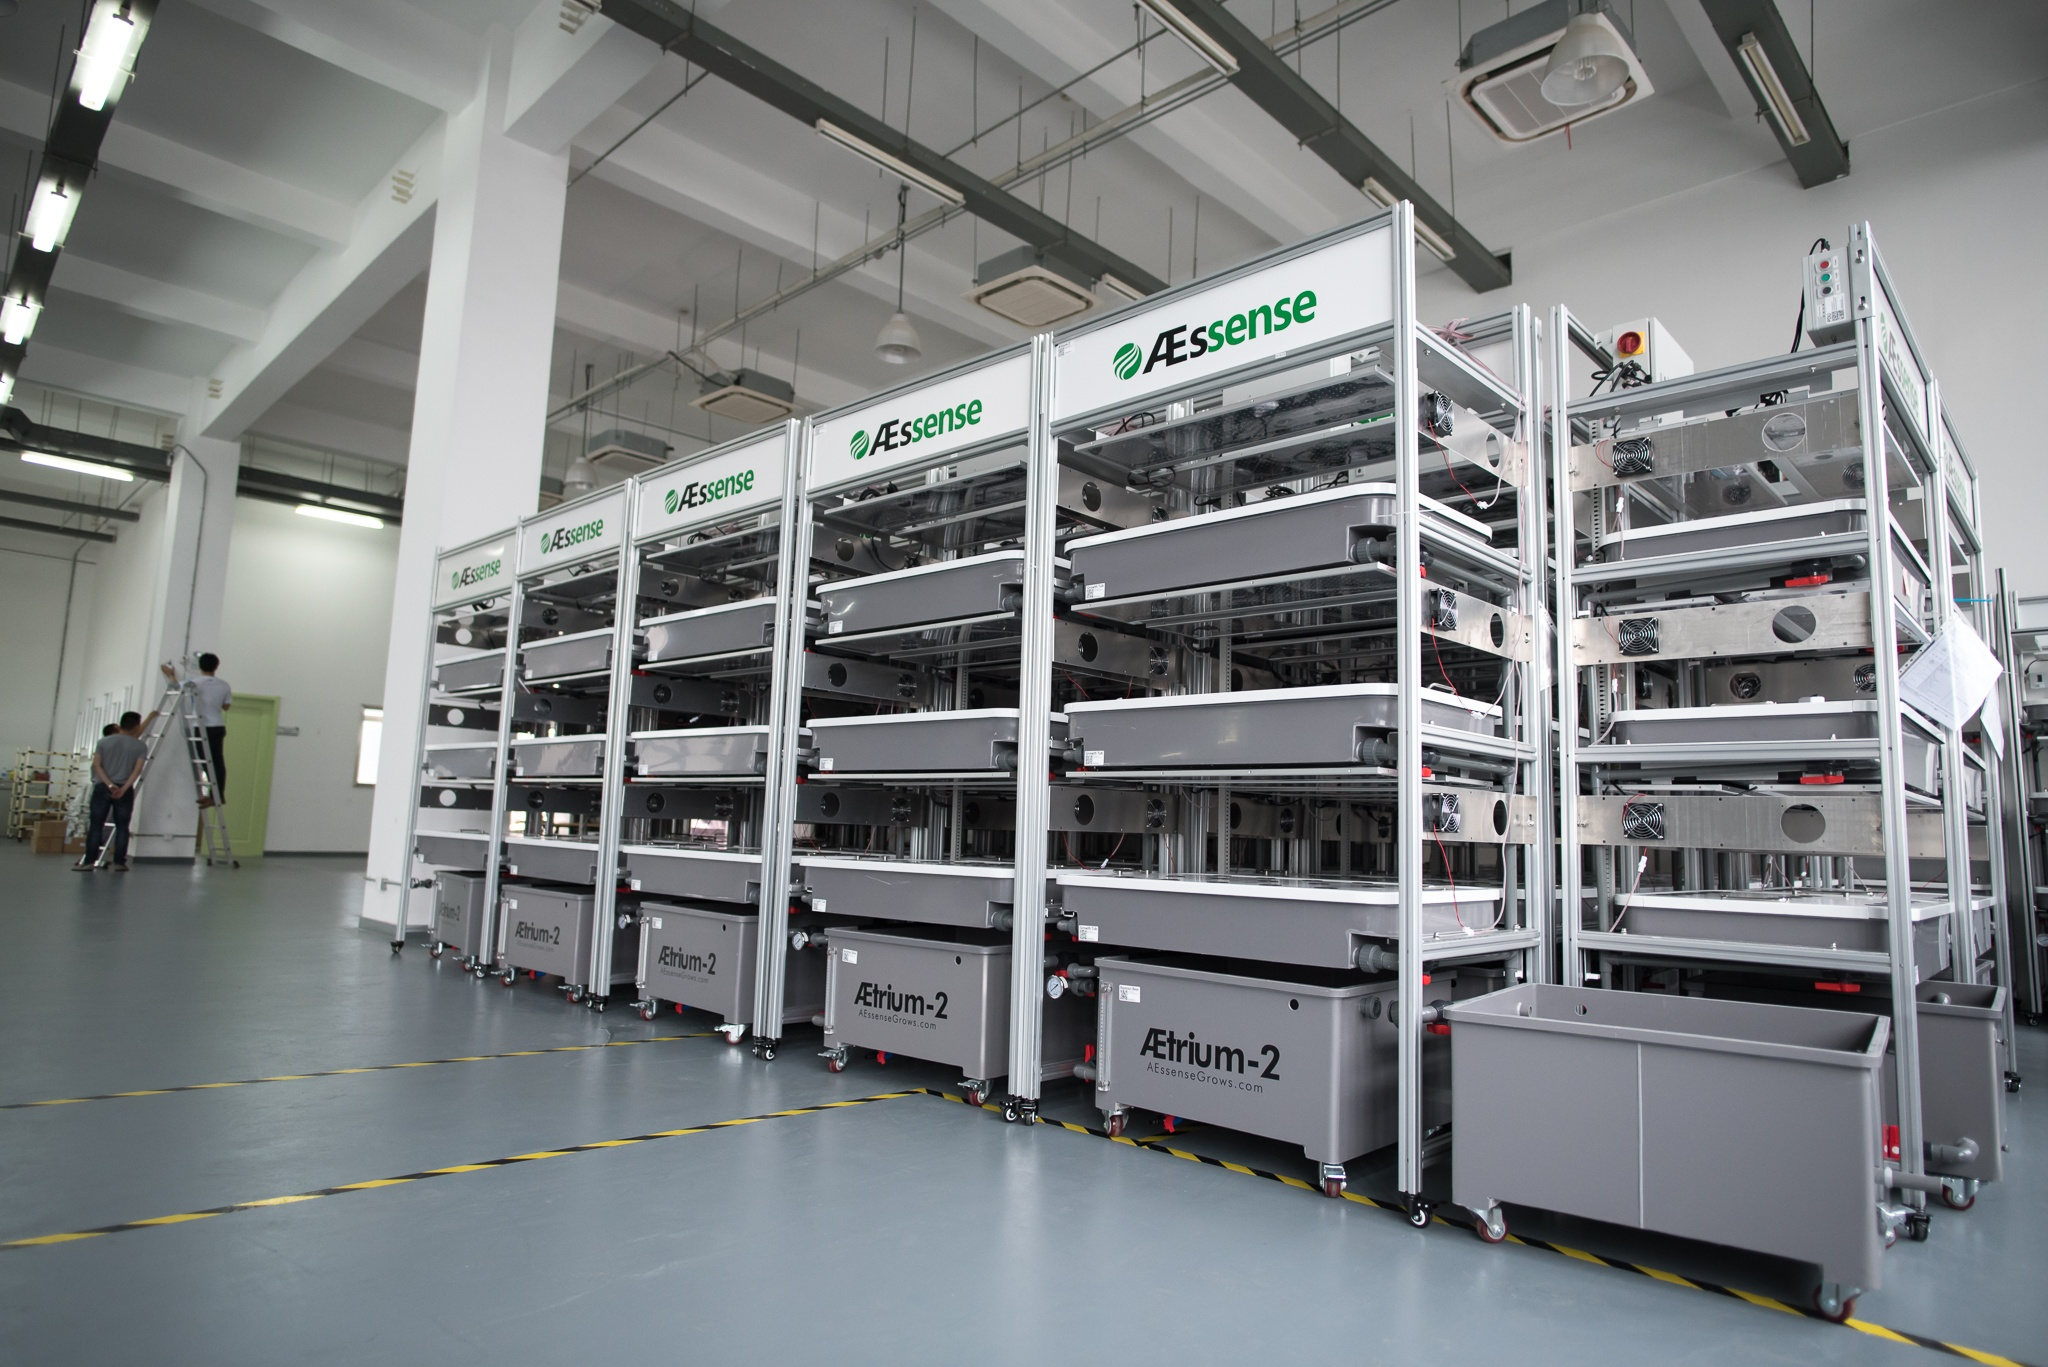 AEssenseGrows Fresh AEtrium-2 Machine Rows